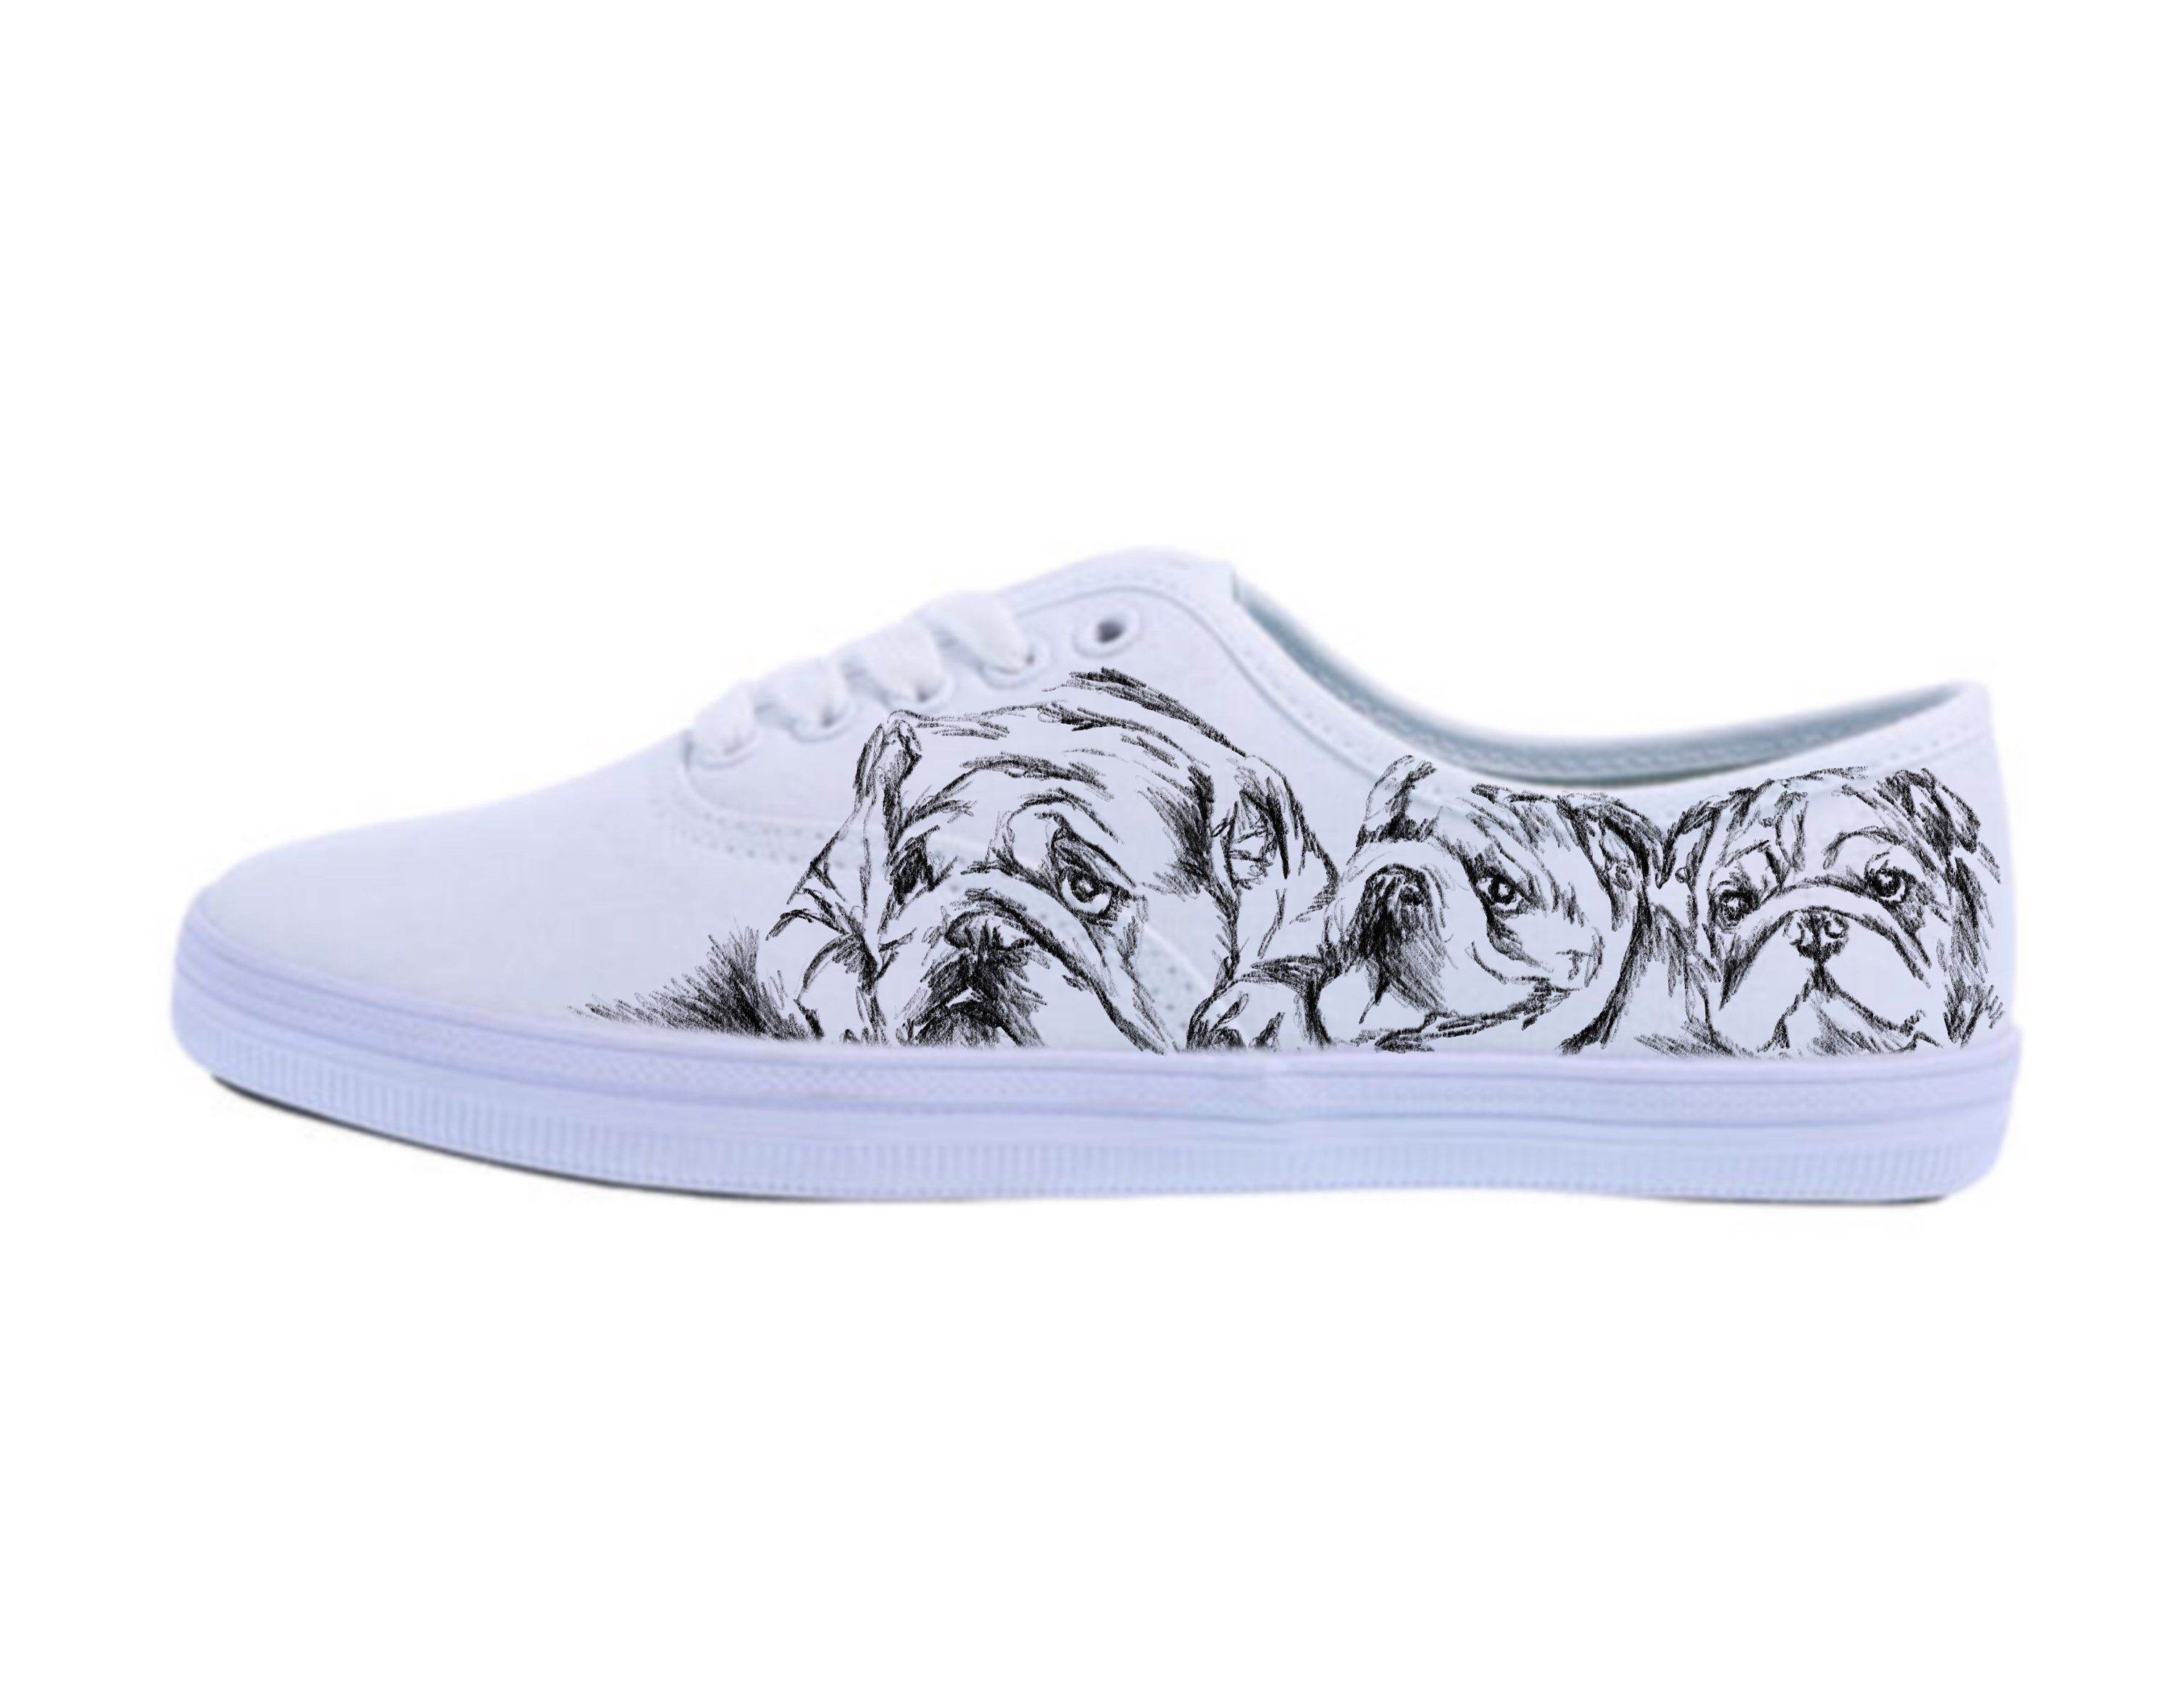 732b96d5288 Custom Women Bulldog Shoes Keds Style Canvas Sneakers Tennis Shoes Dogs Art  Drawing White Vans Addidas